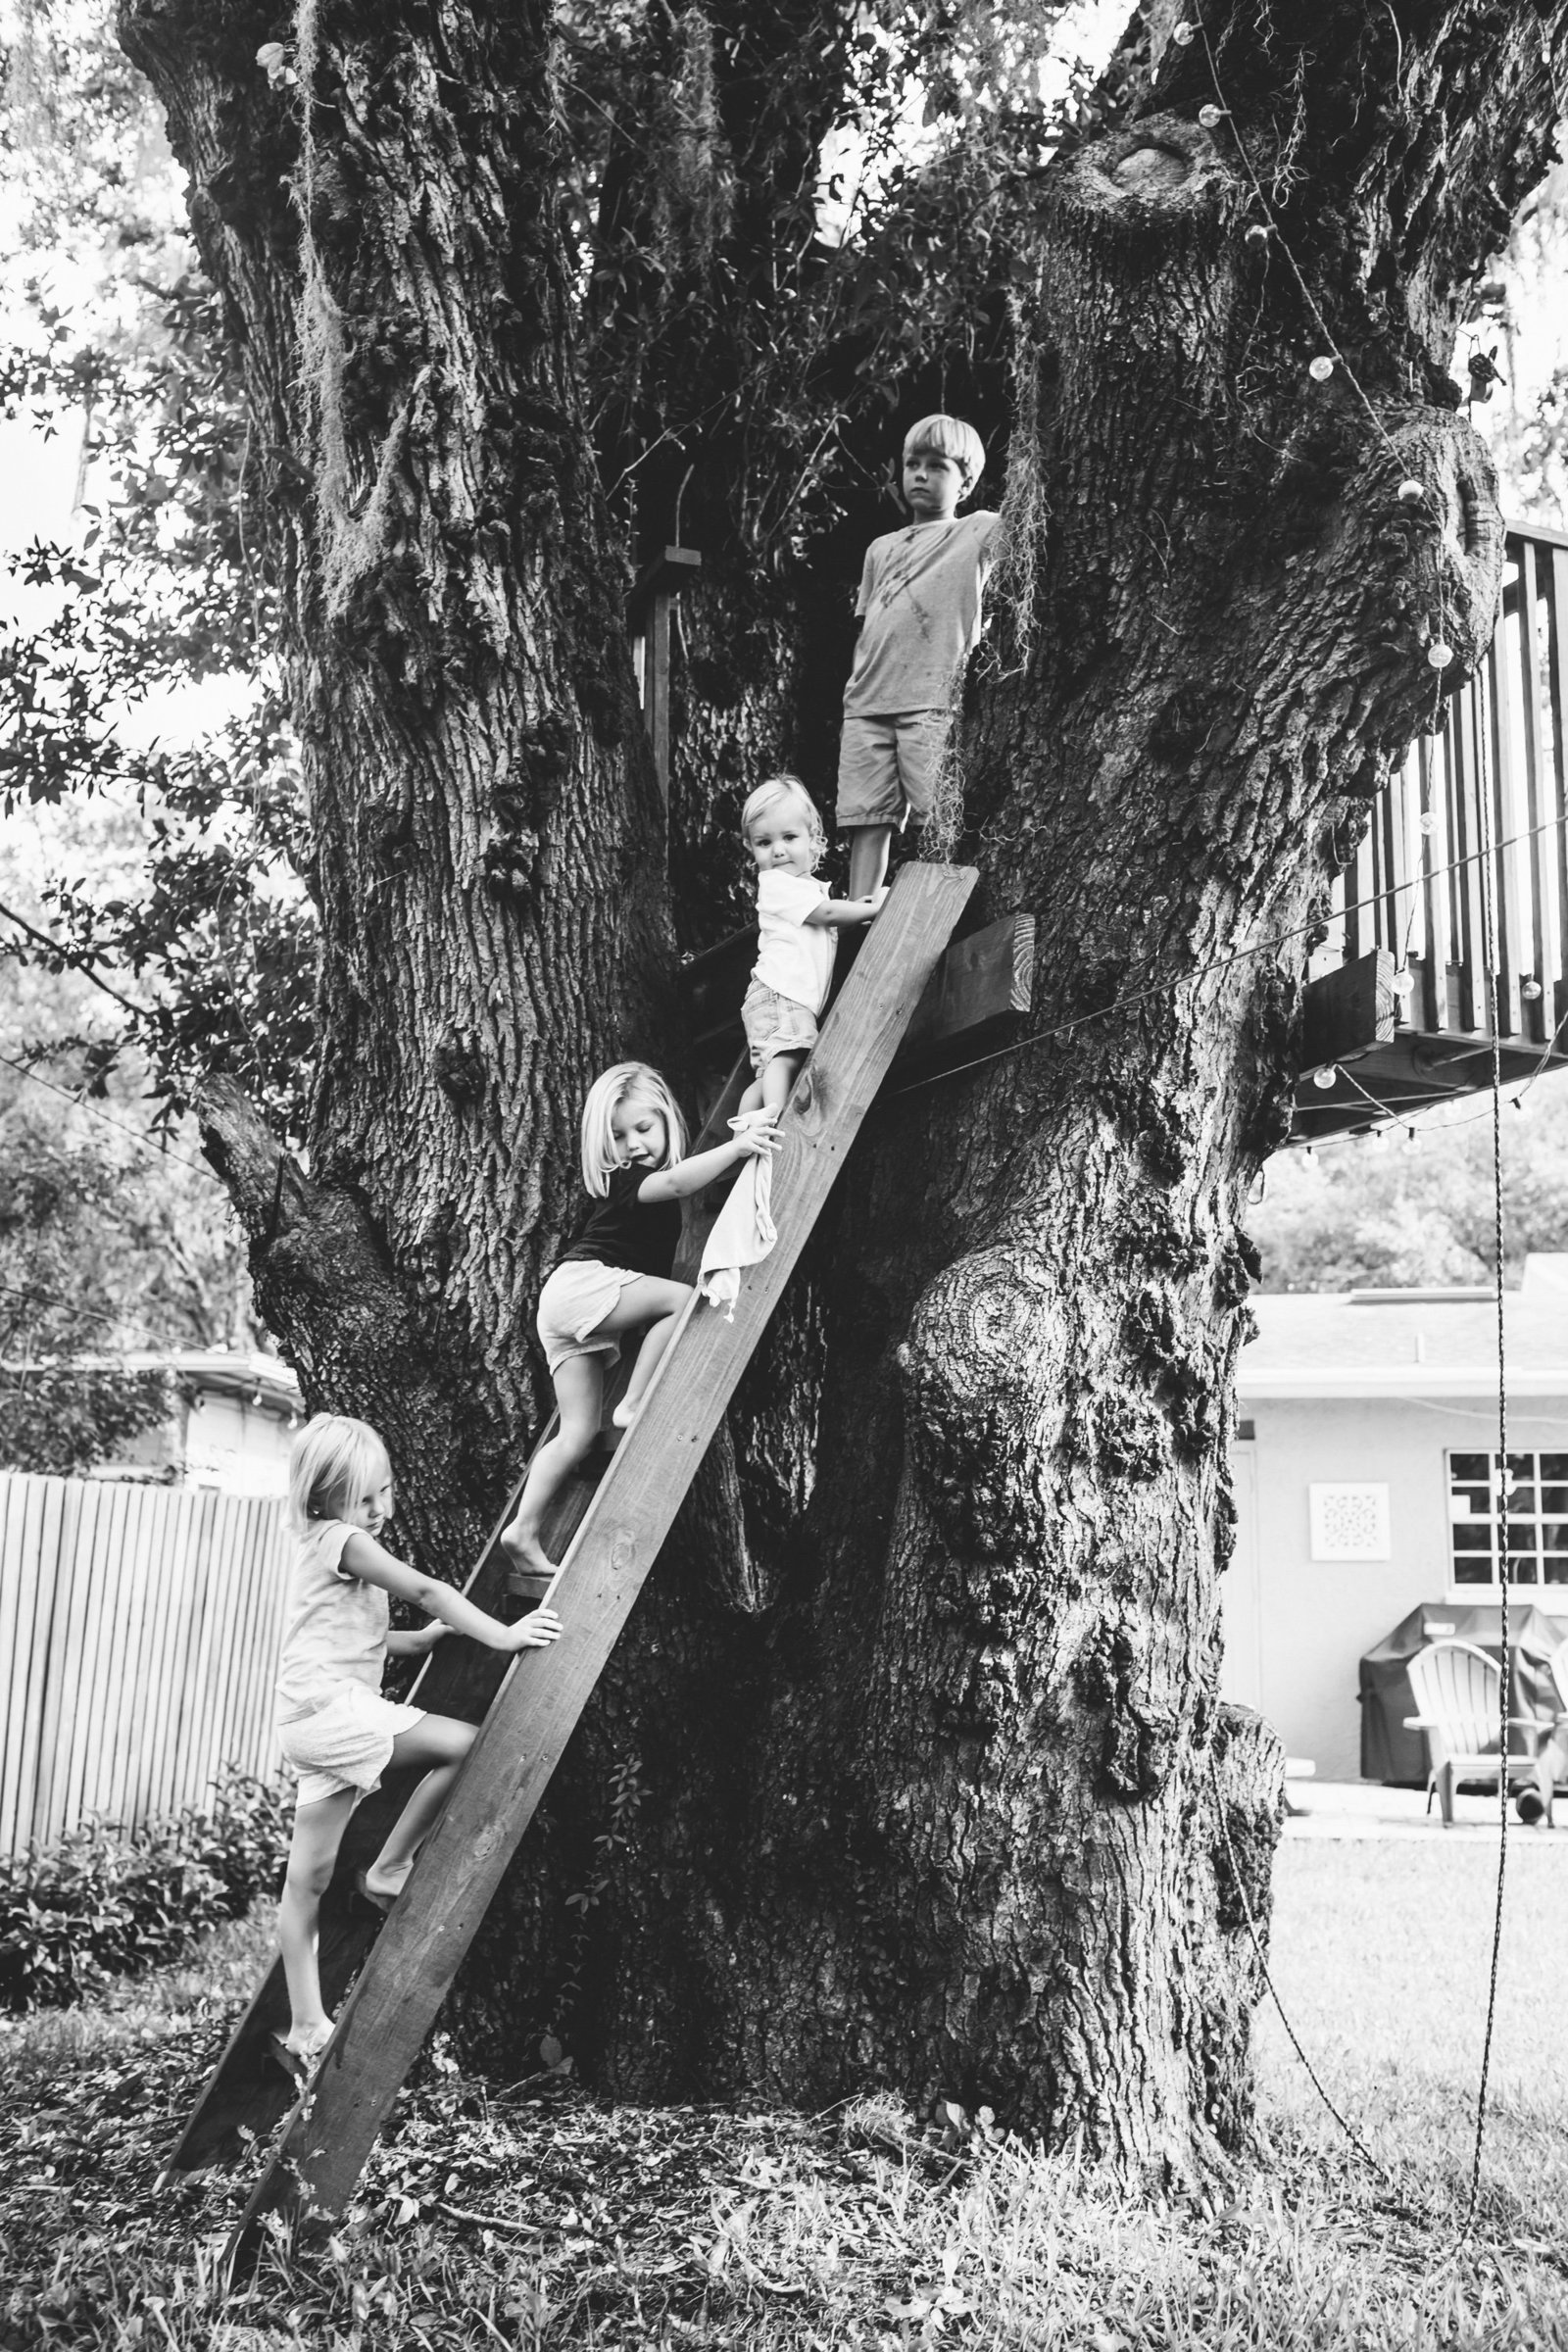 Kids climbing ladder to tree house